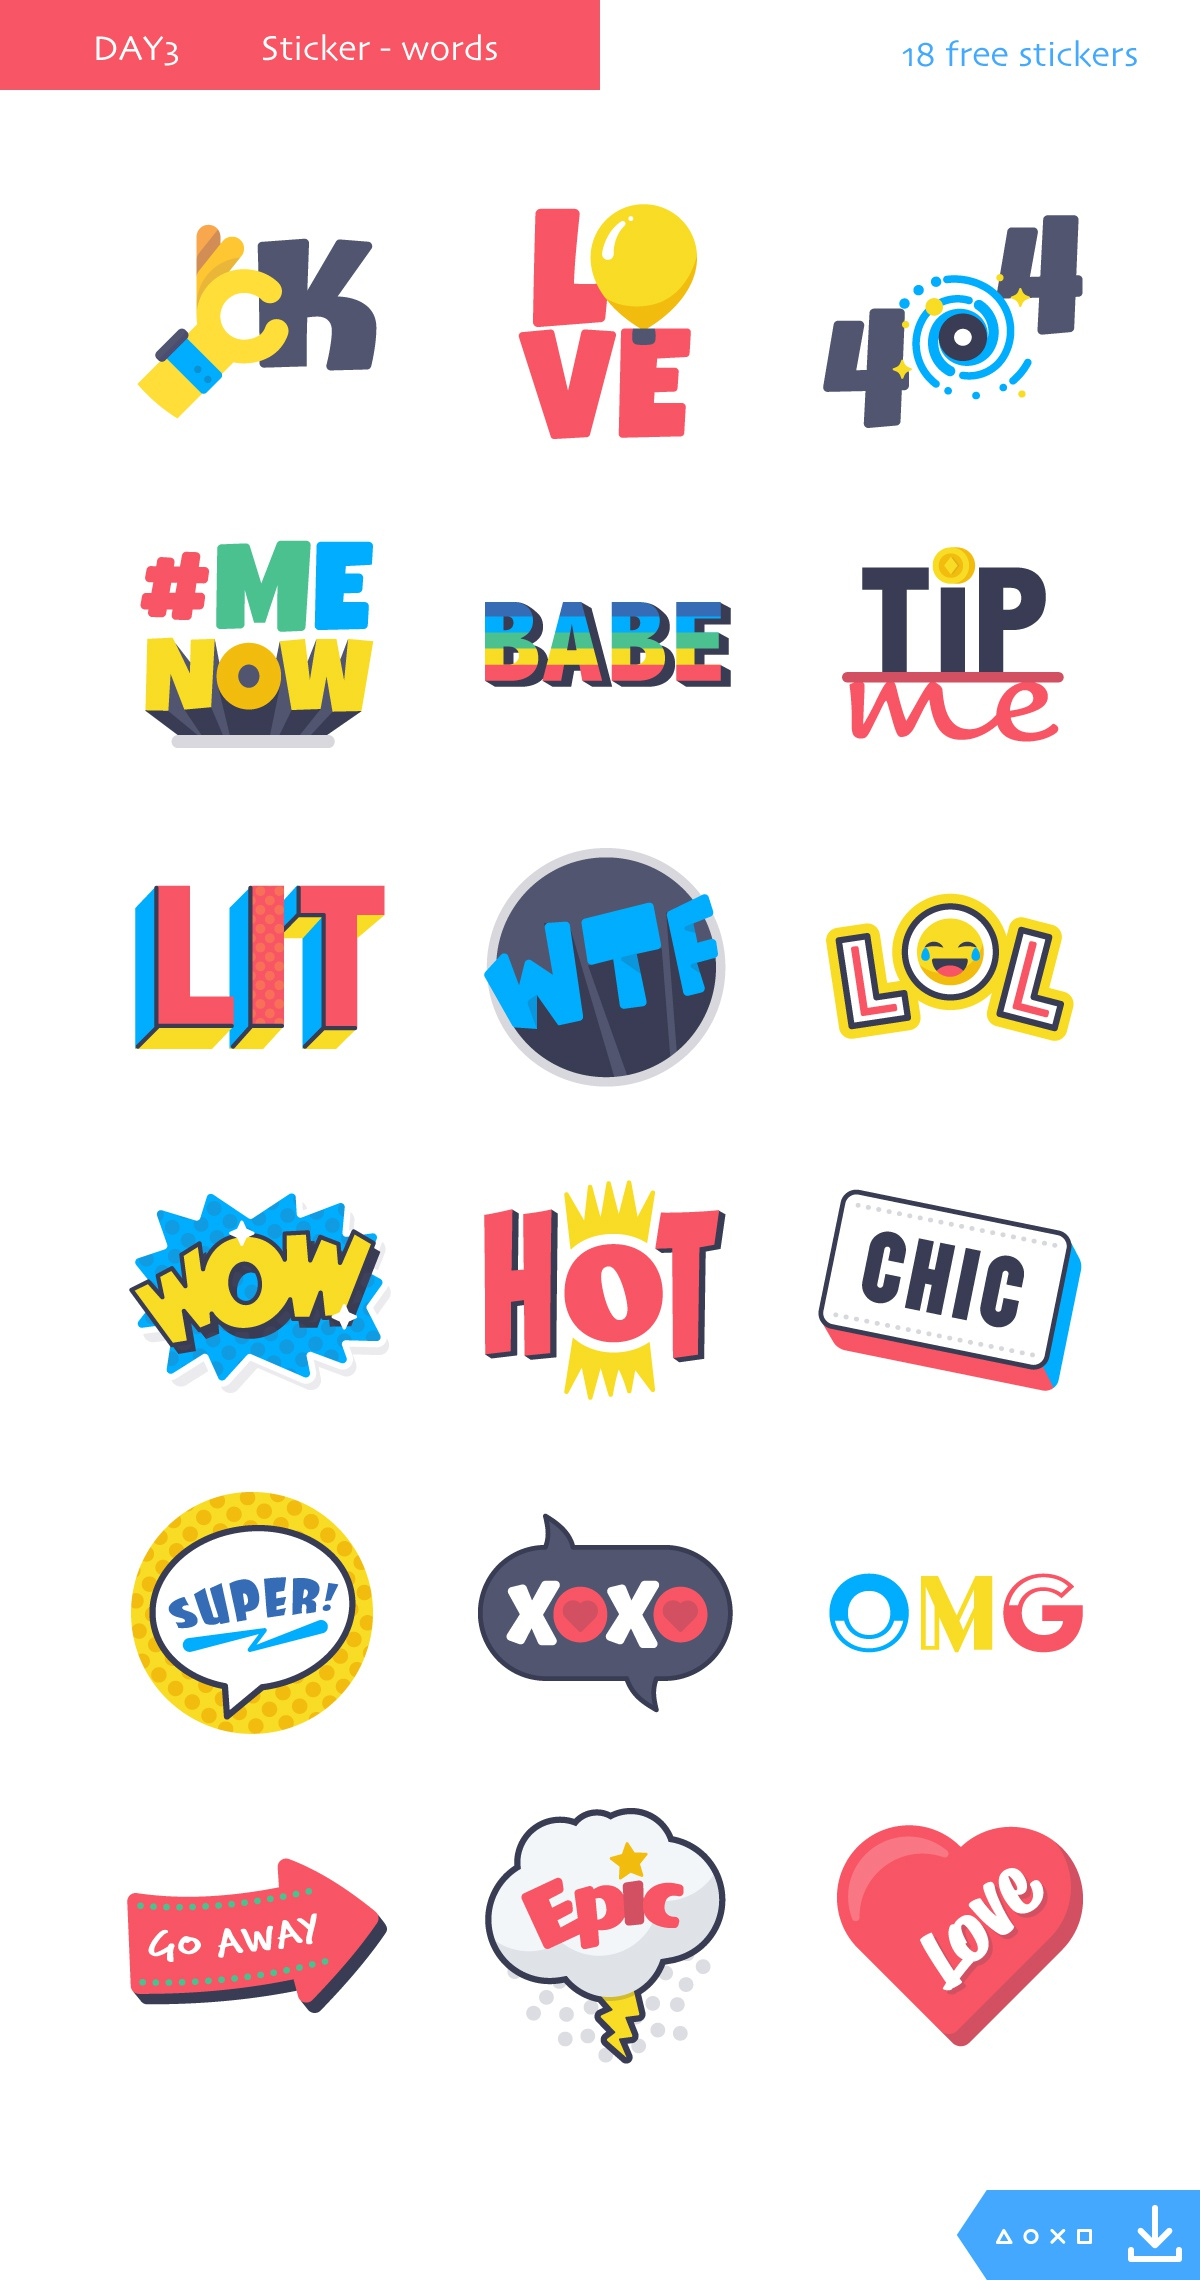 Day3 stickers words